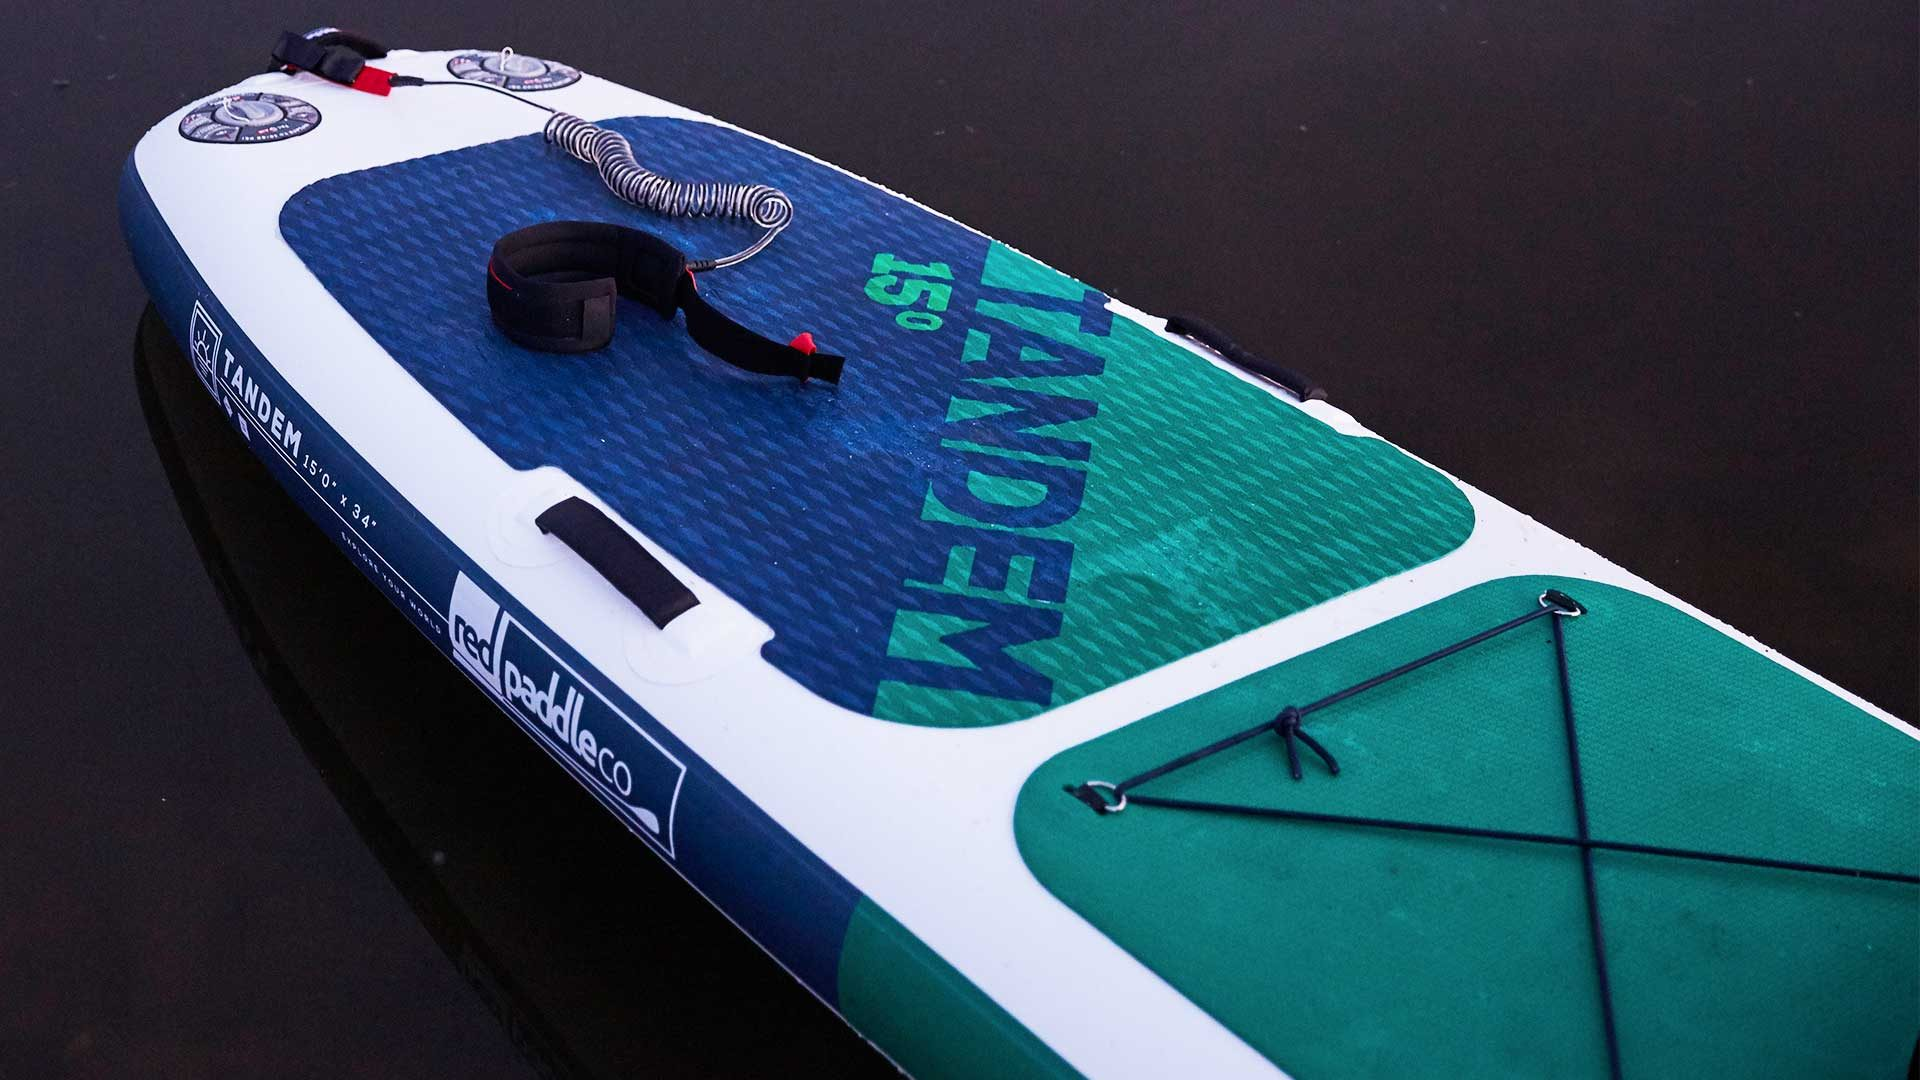 redpaddleco-150-voyager-tandem-inflatable-paddle-board-desktop-gallery-deckpad